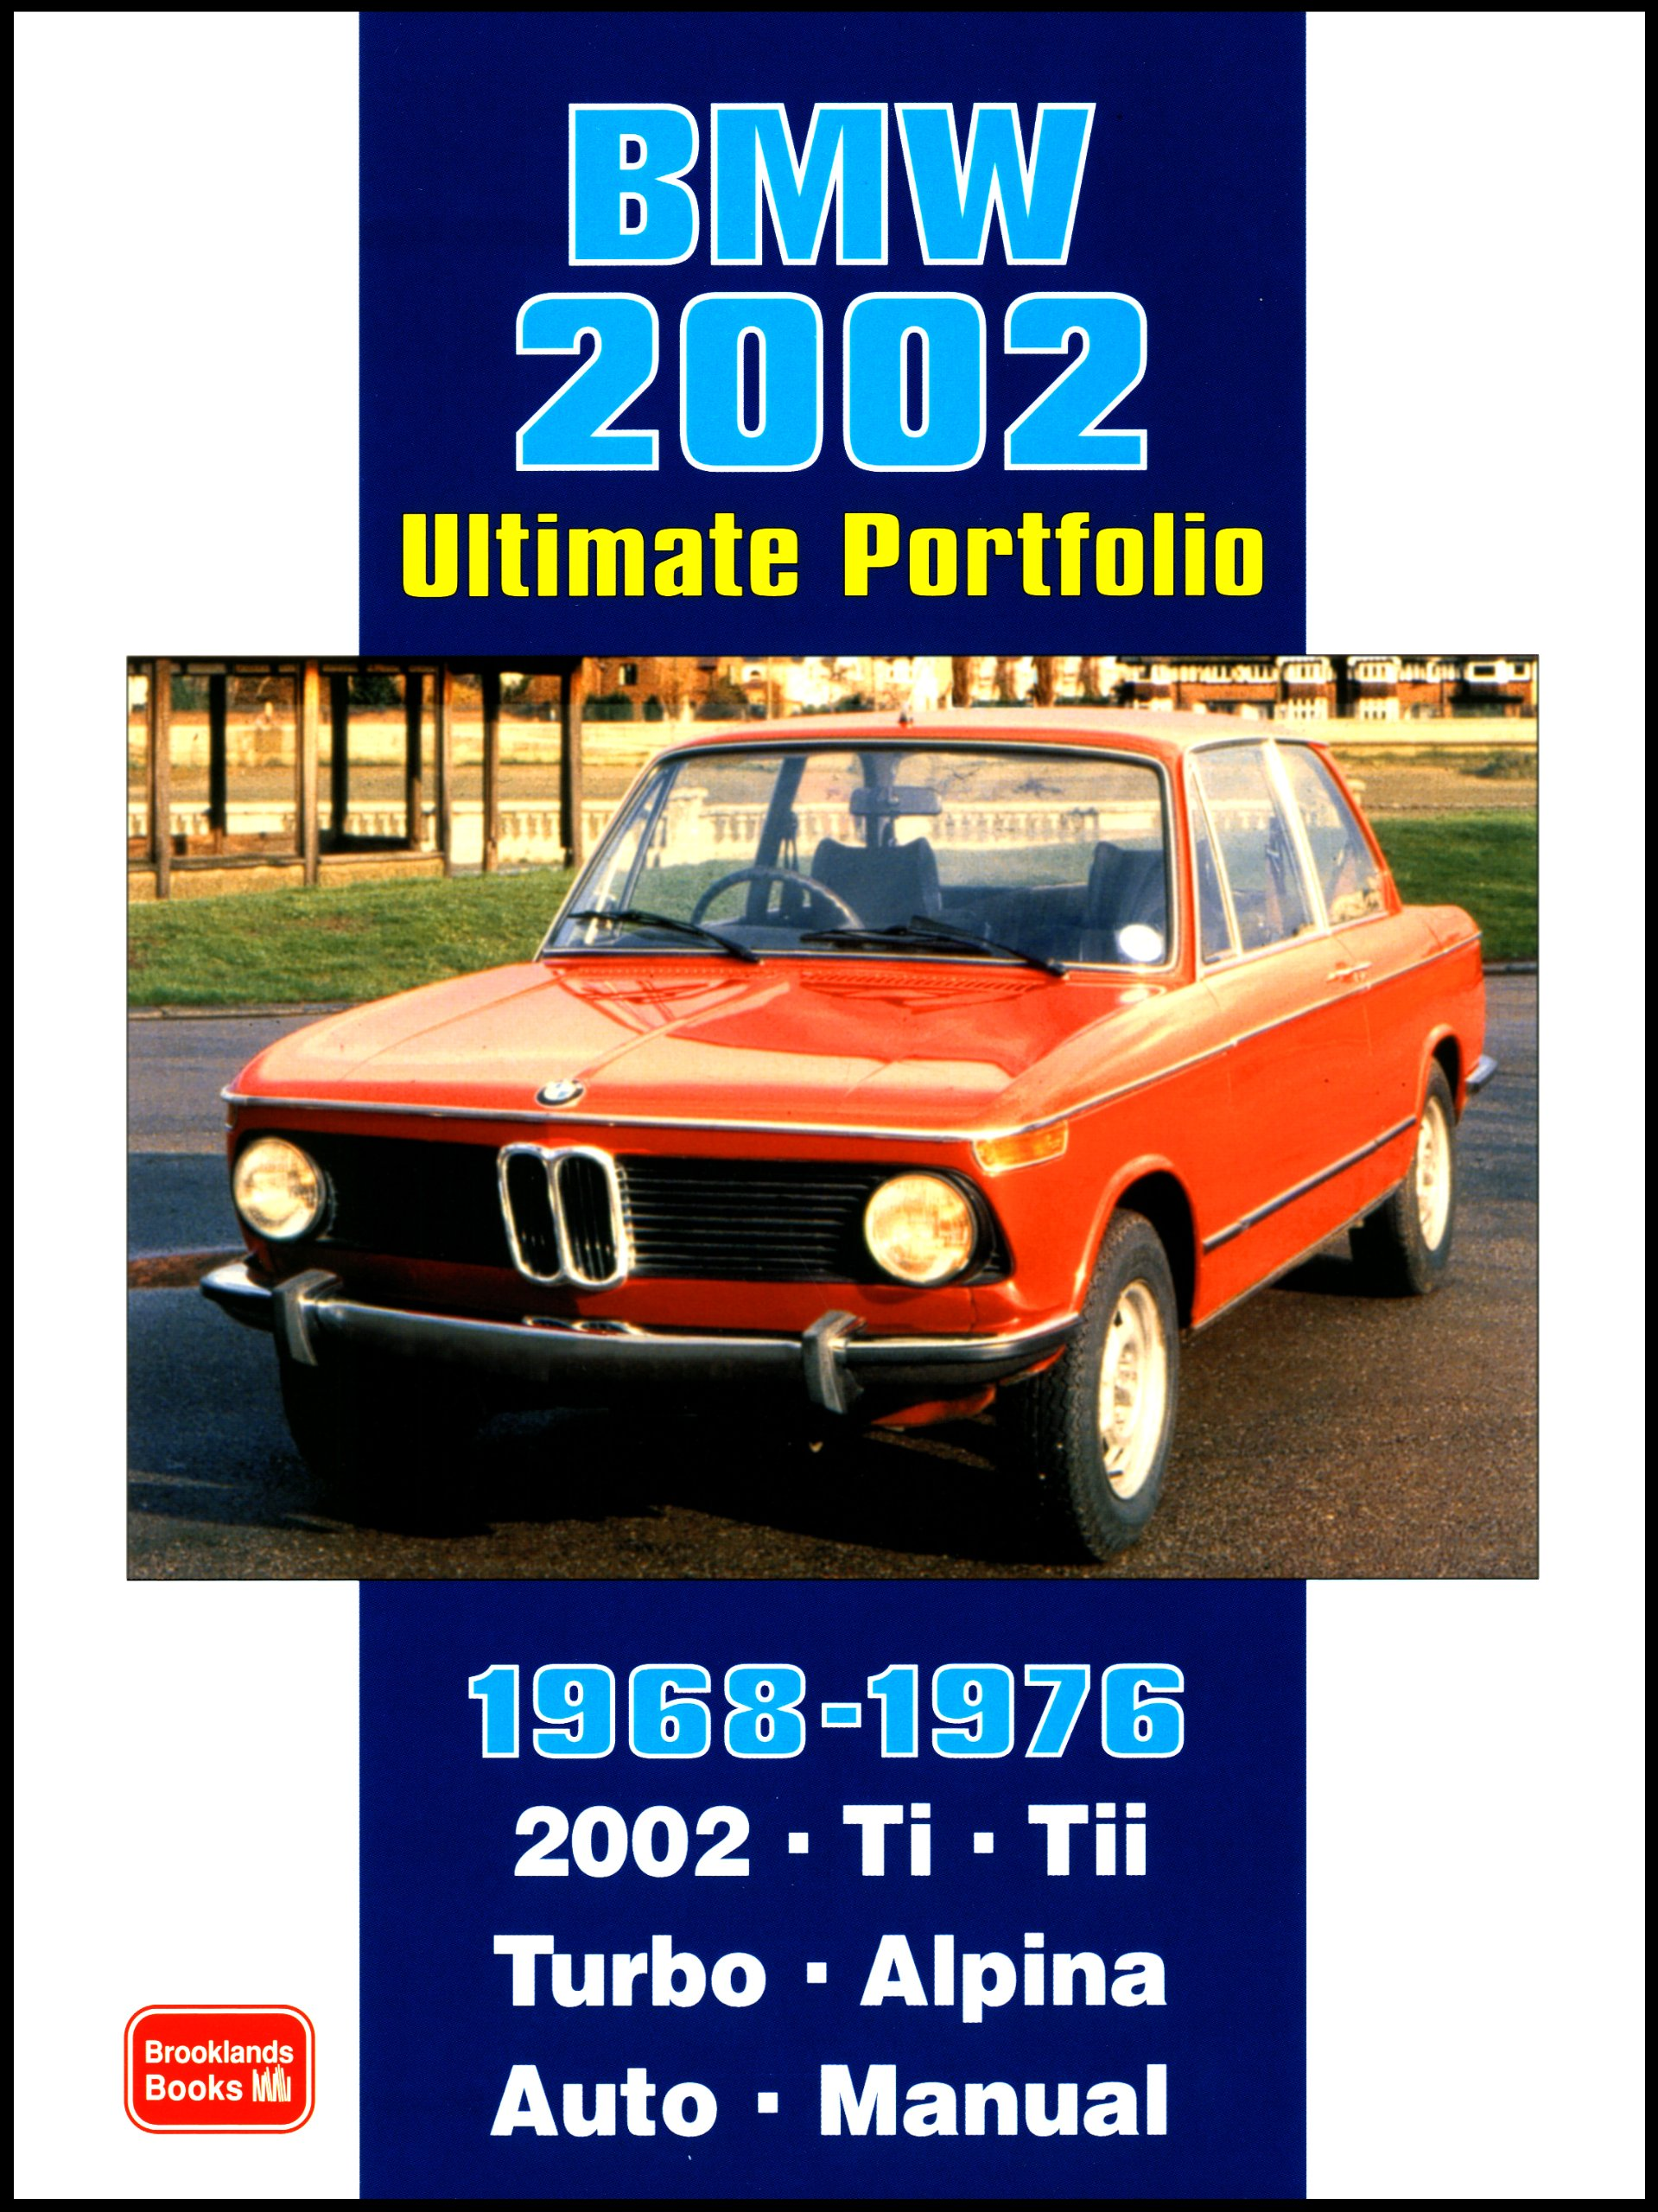 BMW 2002 Ultimate Portfolio 1968-1976: The Story of One of BMWs Truly Classic Models is Told Through 74 Contemporary Articles - Models: 2002 Ti, Tii, ...